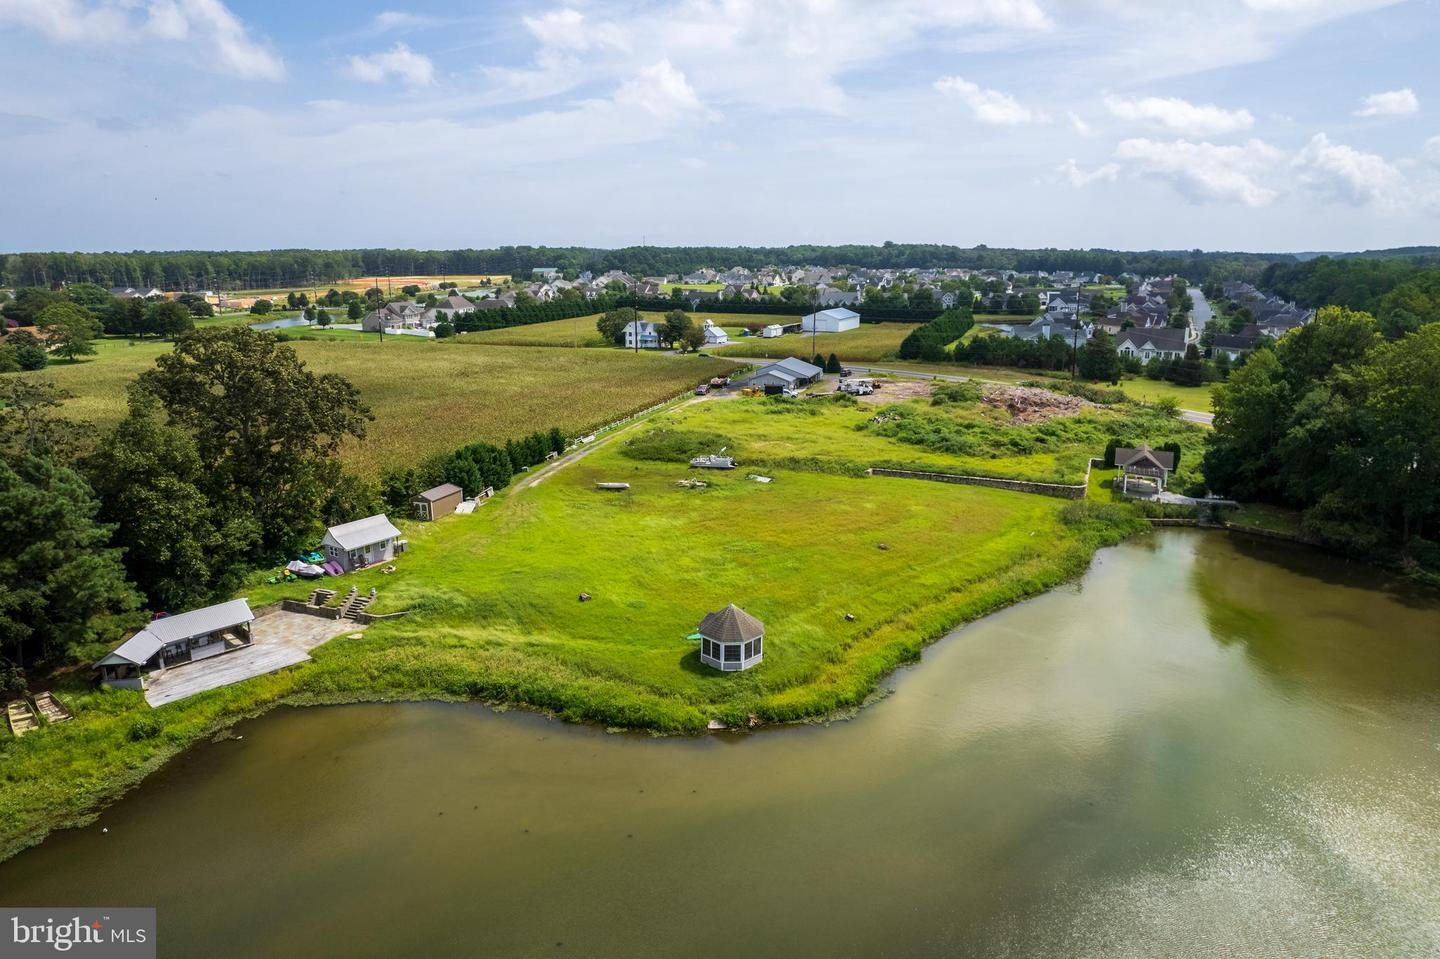 DESU2005518-801069829544-2021-09-22-22-54-13 Lots and Land for sale in Rehoboth Beach, Dewey Beach and More - Rehoboth Beach Real Estate - Bryce Lingo and Shaun Tull REALTORS, Rehoboth Beach, Delaware